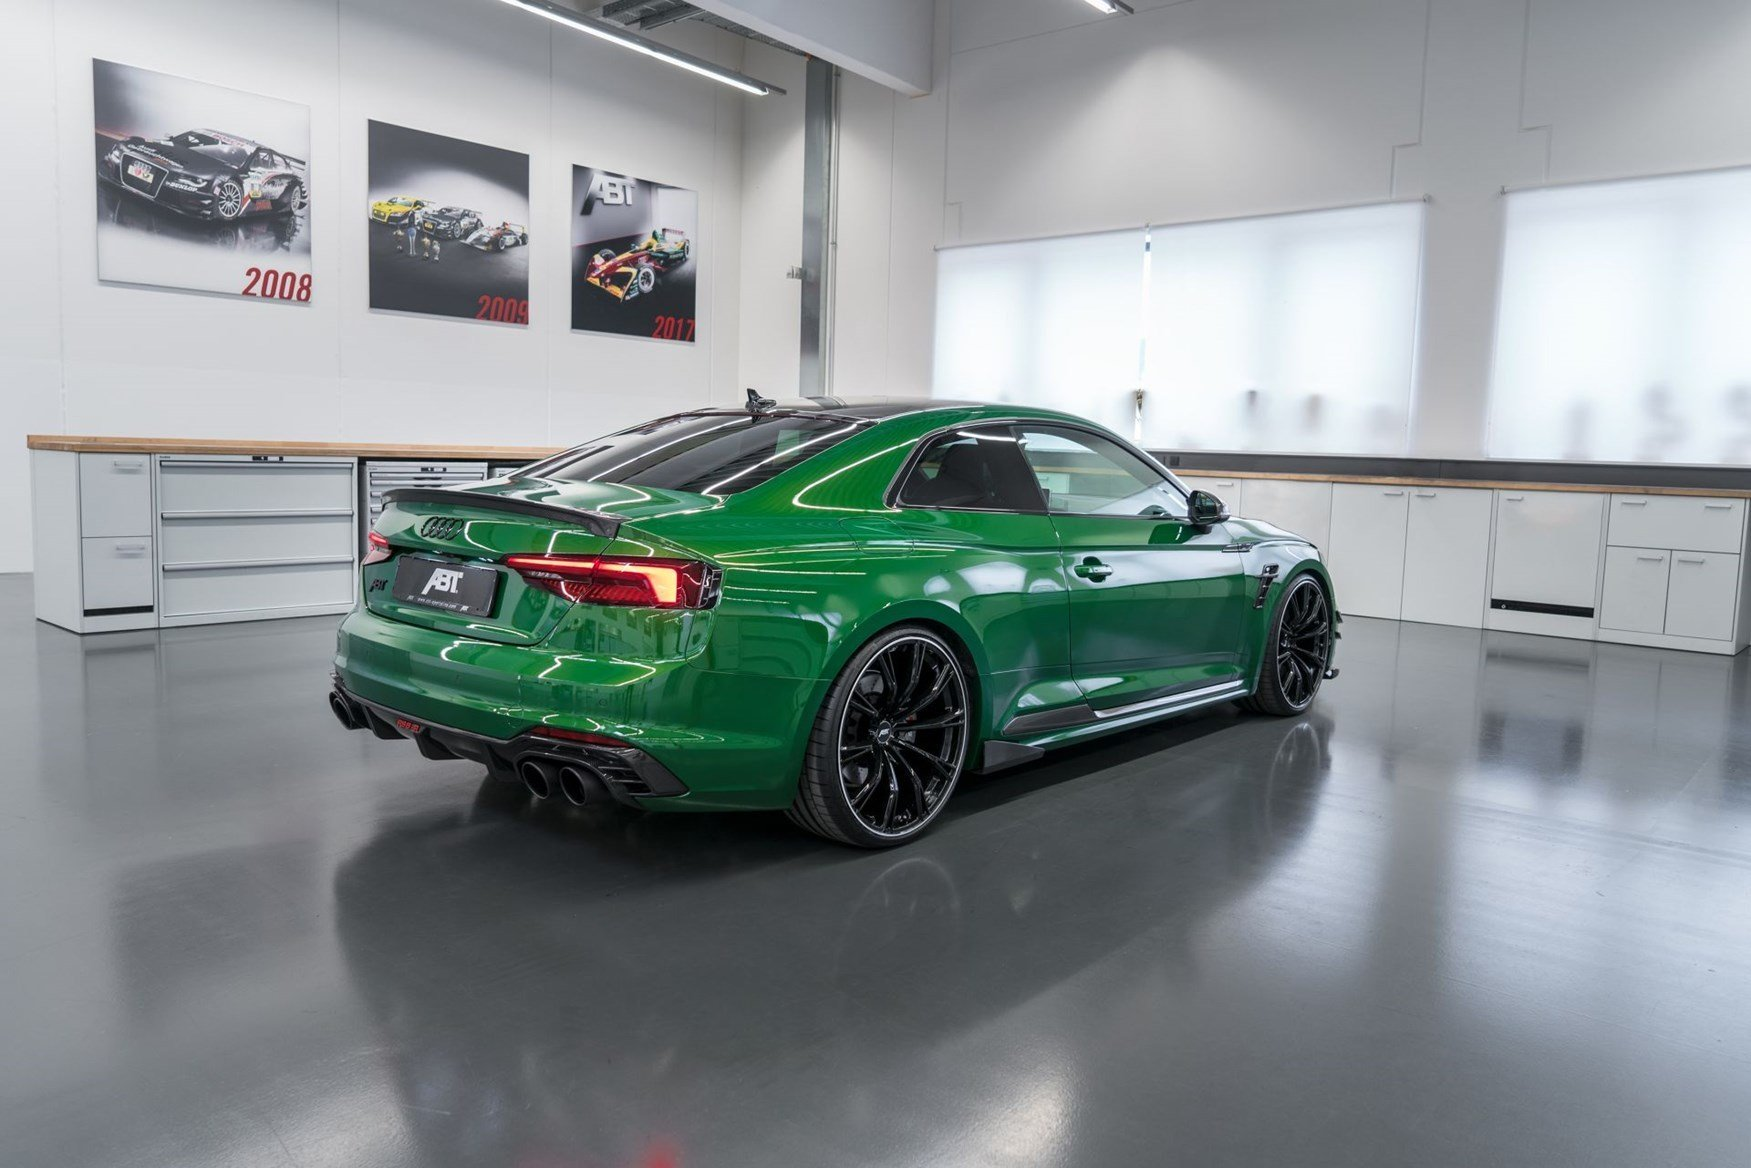 Latest Meet The Abt Rs5 R For When The Normal Audi Rs5 Isn't Free Download